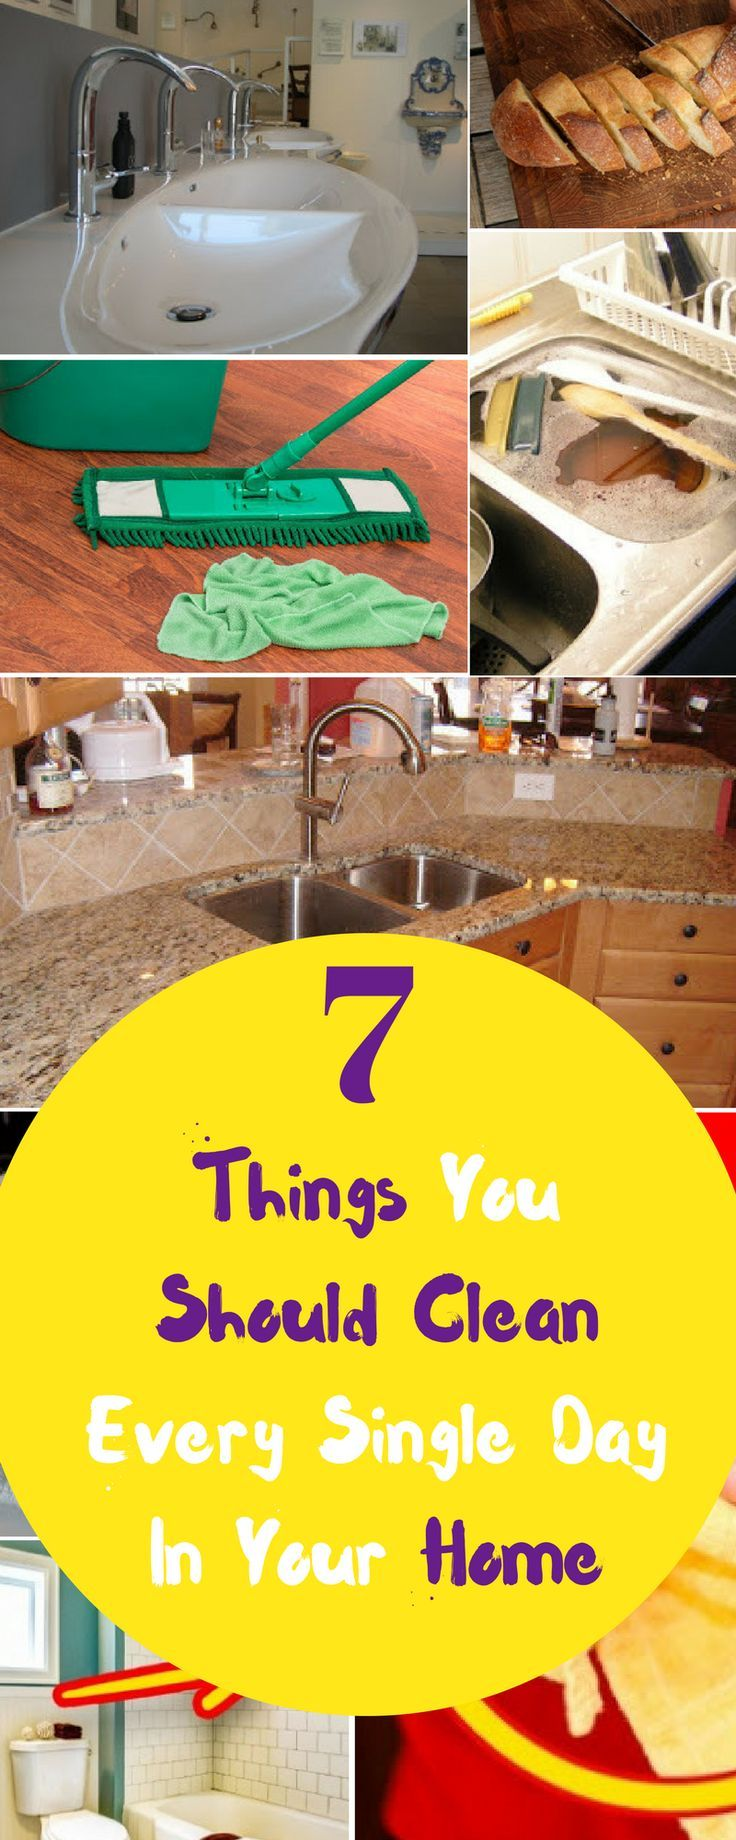 7 Things You Should Clean Every Single Day In Your Home